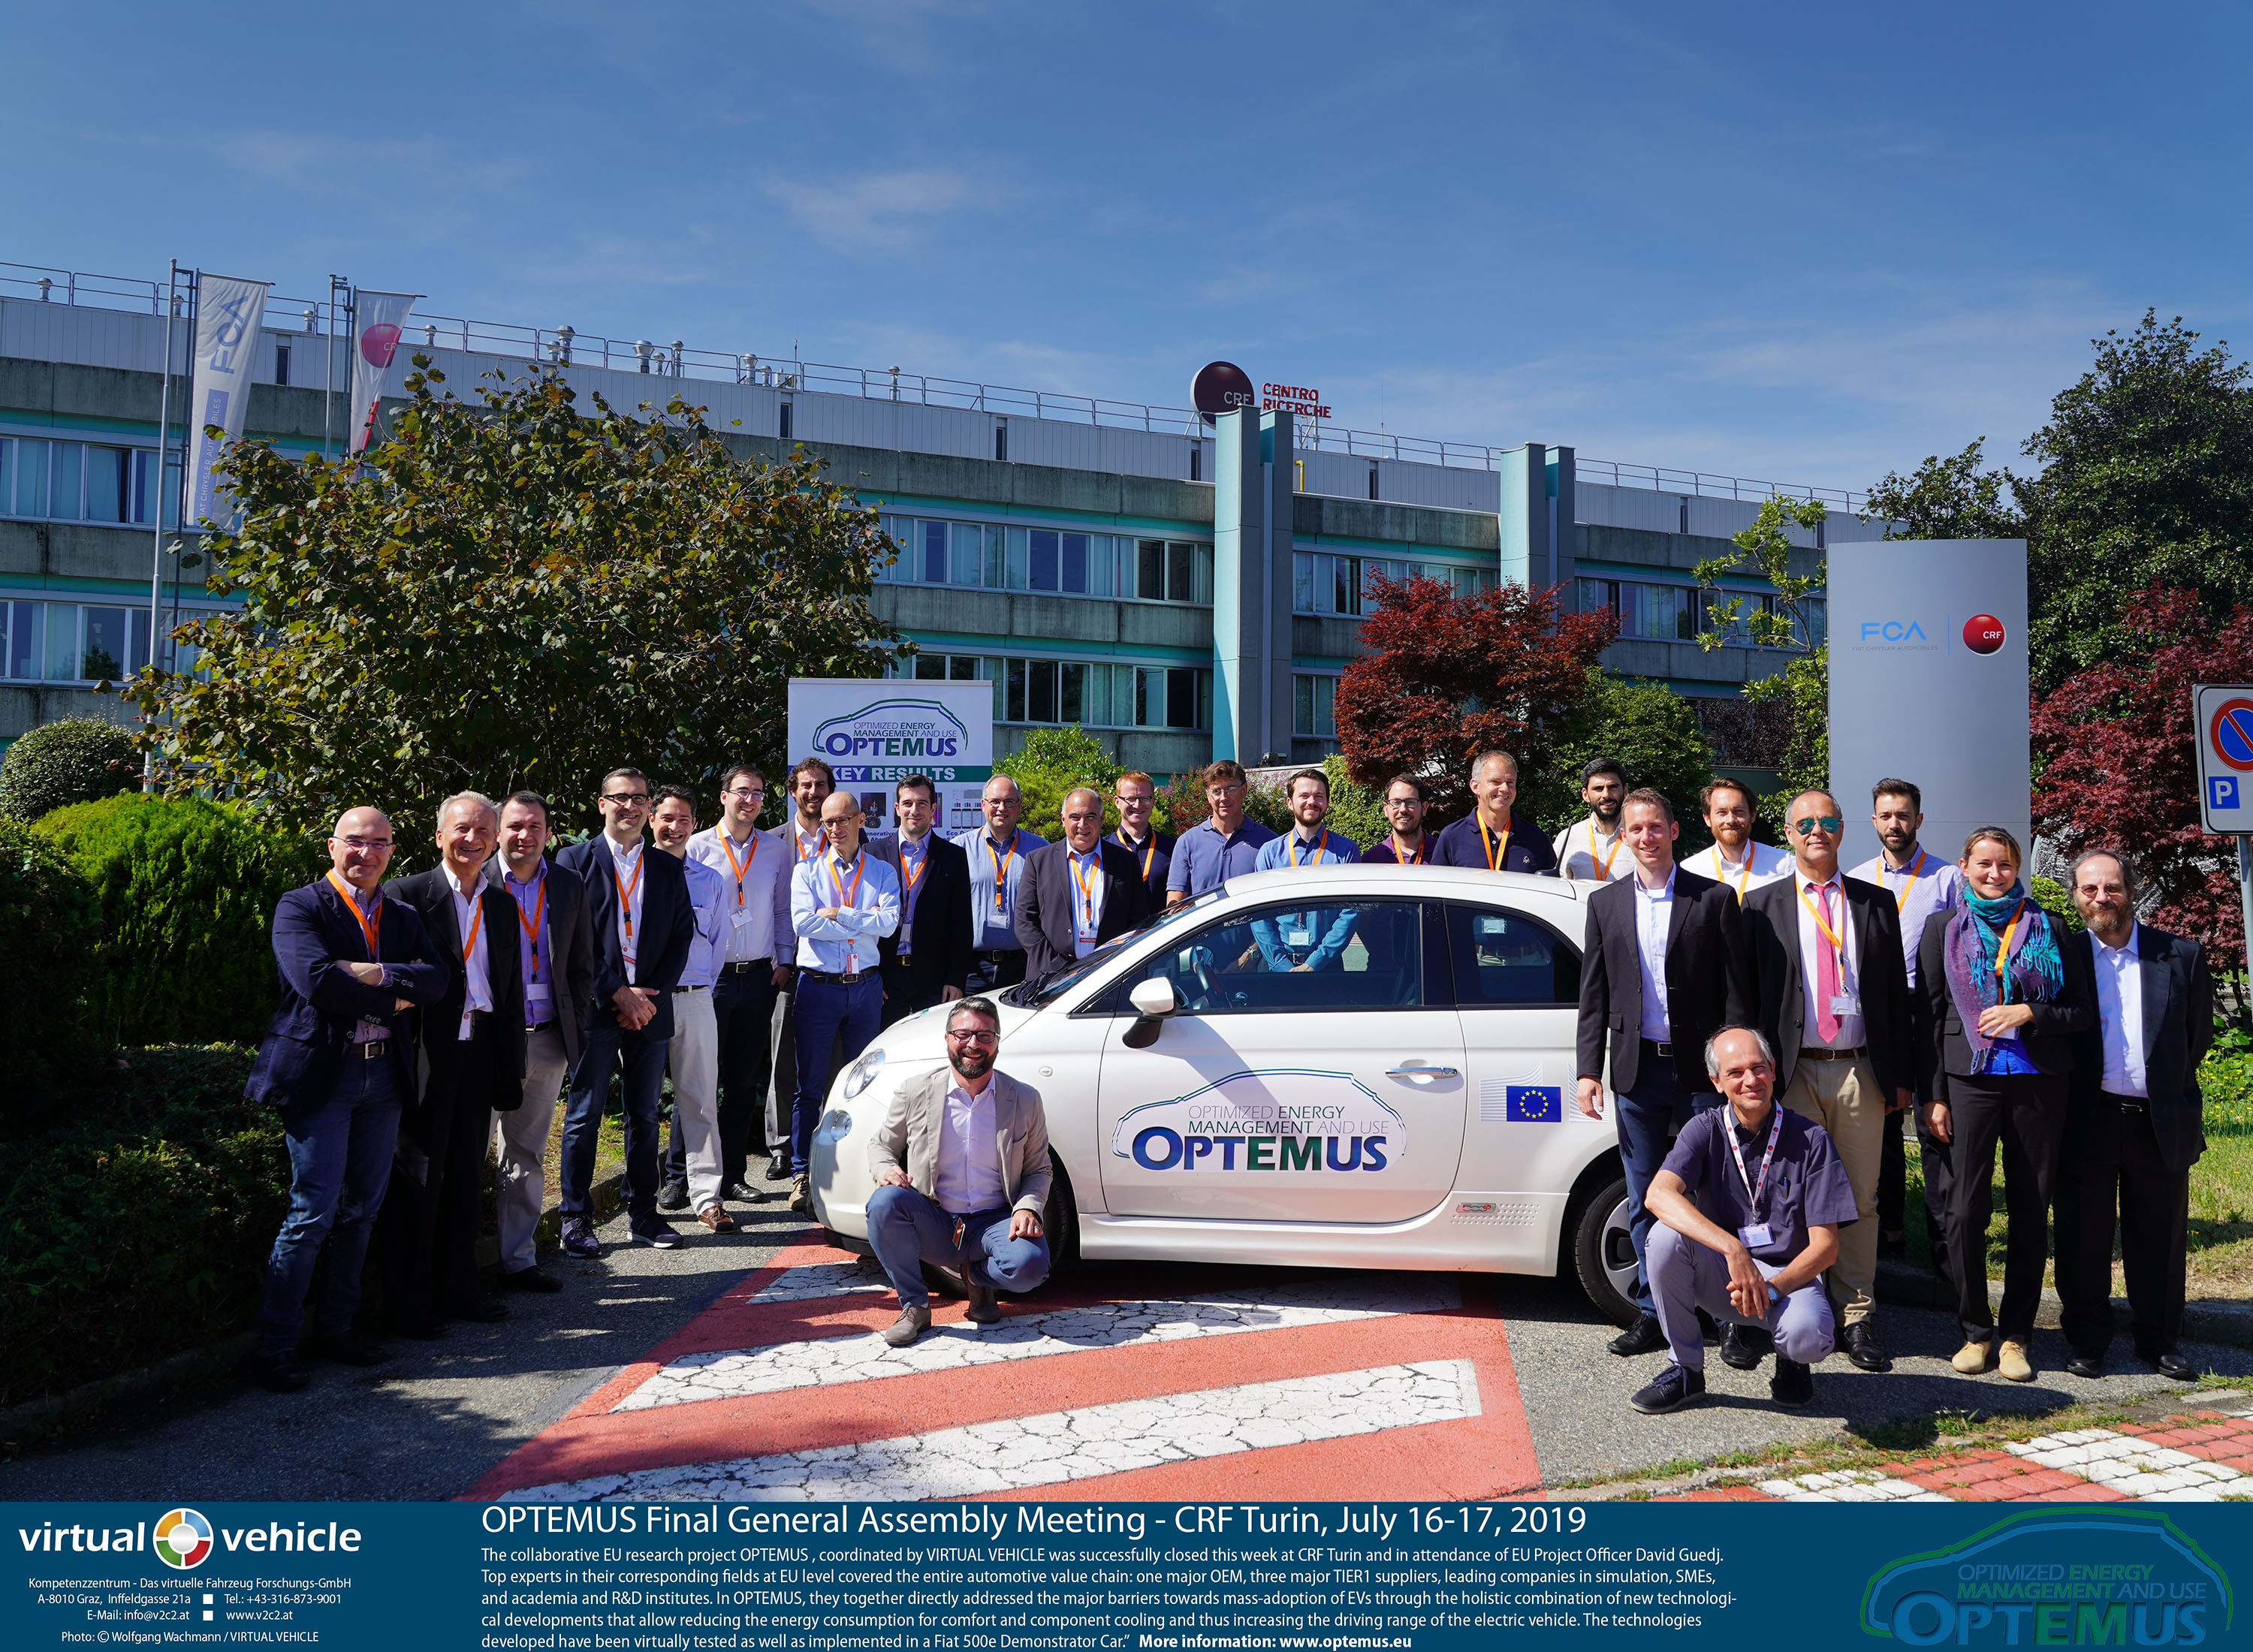 "OPTEMUS Final General Assembly Meeting - CRF Turin, July 16-17, 2019   -   The collaborative EU research project OPTEMUS , coordinated by VIRTUAL VEHICLE was successfully closed this week at CRF Turin and in attendance of EU Project Officer David Guedj. Top experts in their corresponding fields at EU level covered the entire automotive value chain: one major OEM, three major TIER1 suppliers, leading companies in simulation, SMEs, and academia and R&D institutes. In OPTEMUS, they together directly addressed the major barriers towards mass-adoption of EVs through the holistic combination of new technological developments that allow reducing the energy consumption for comfort and component cooling and thus increasing the driving range of the electric vehicle. The technologies developed have been virtually tested as well as implemented in a Fiat 500e Demonstrator Car.""   More information: www.optemus.eu"